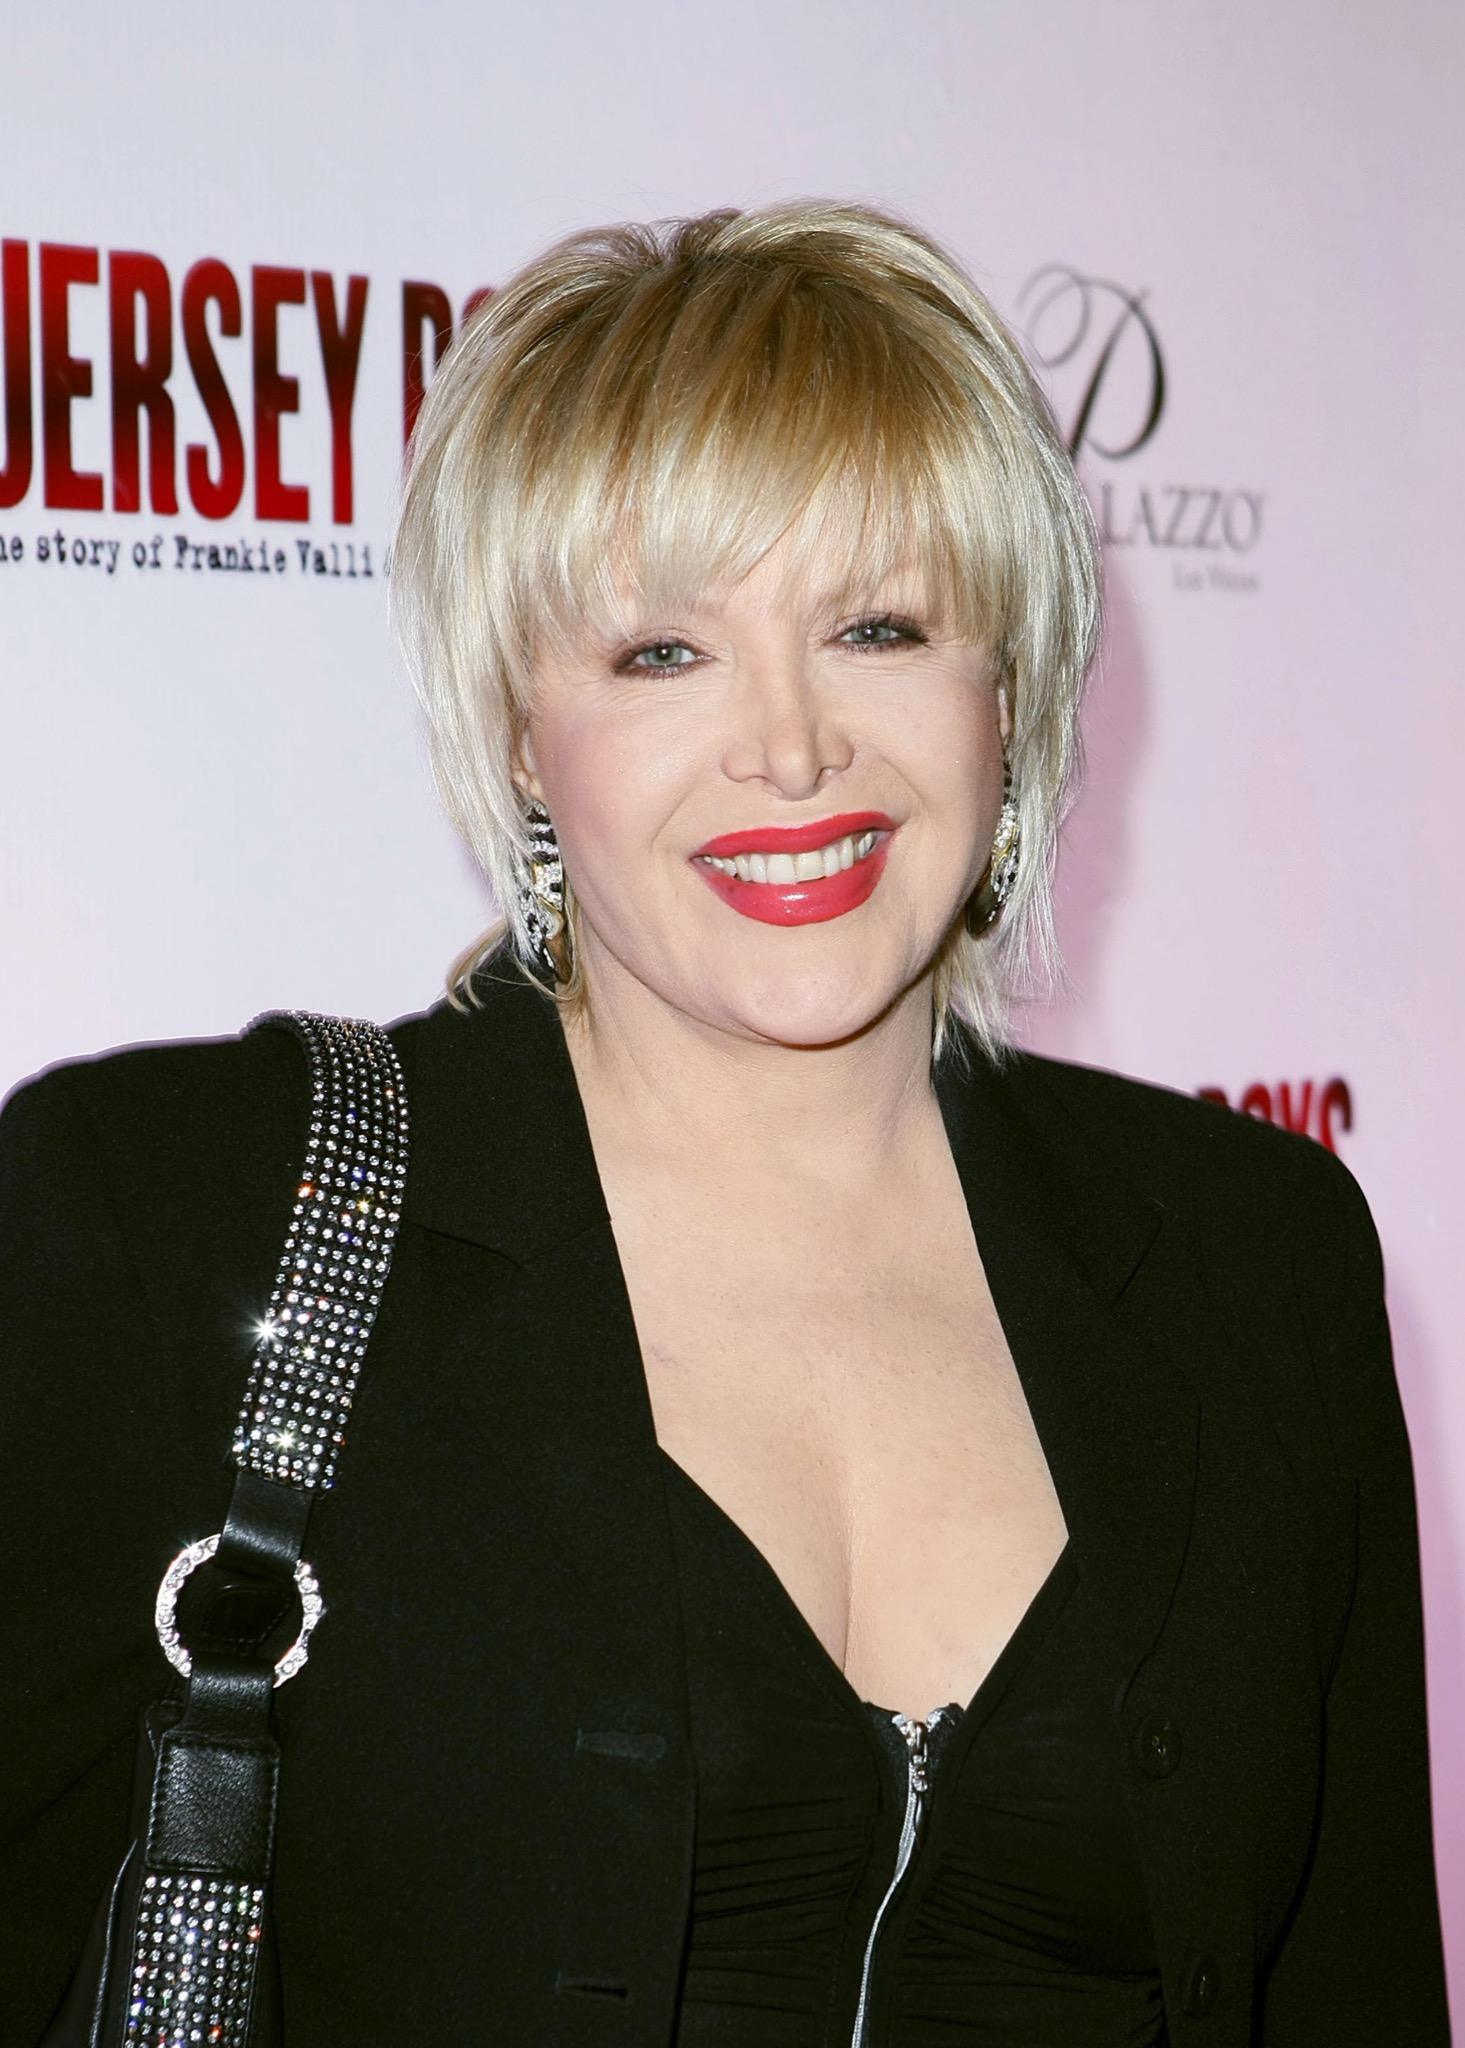 Gennifer Flowers Opening Night of 'Jersey Boys The Story of Frankie Valli & The Four Seasons' at The Palazzo Hotel Casino - Arrivals Las Vegas, Nevada - 03.05.08 Featuring: Gennifer Flowers Where: United States When: 03 May 2008 Credit: Judy Eddy / WENN